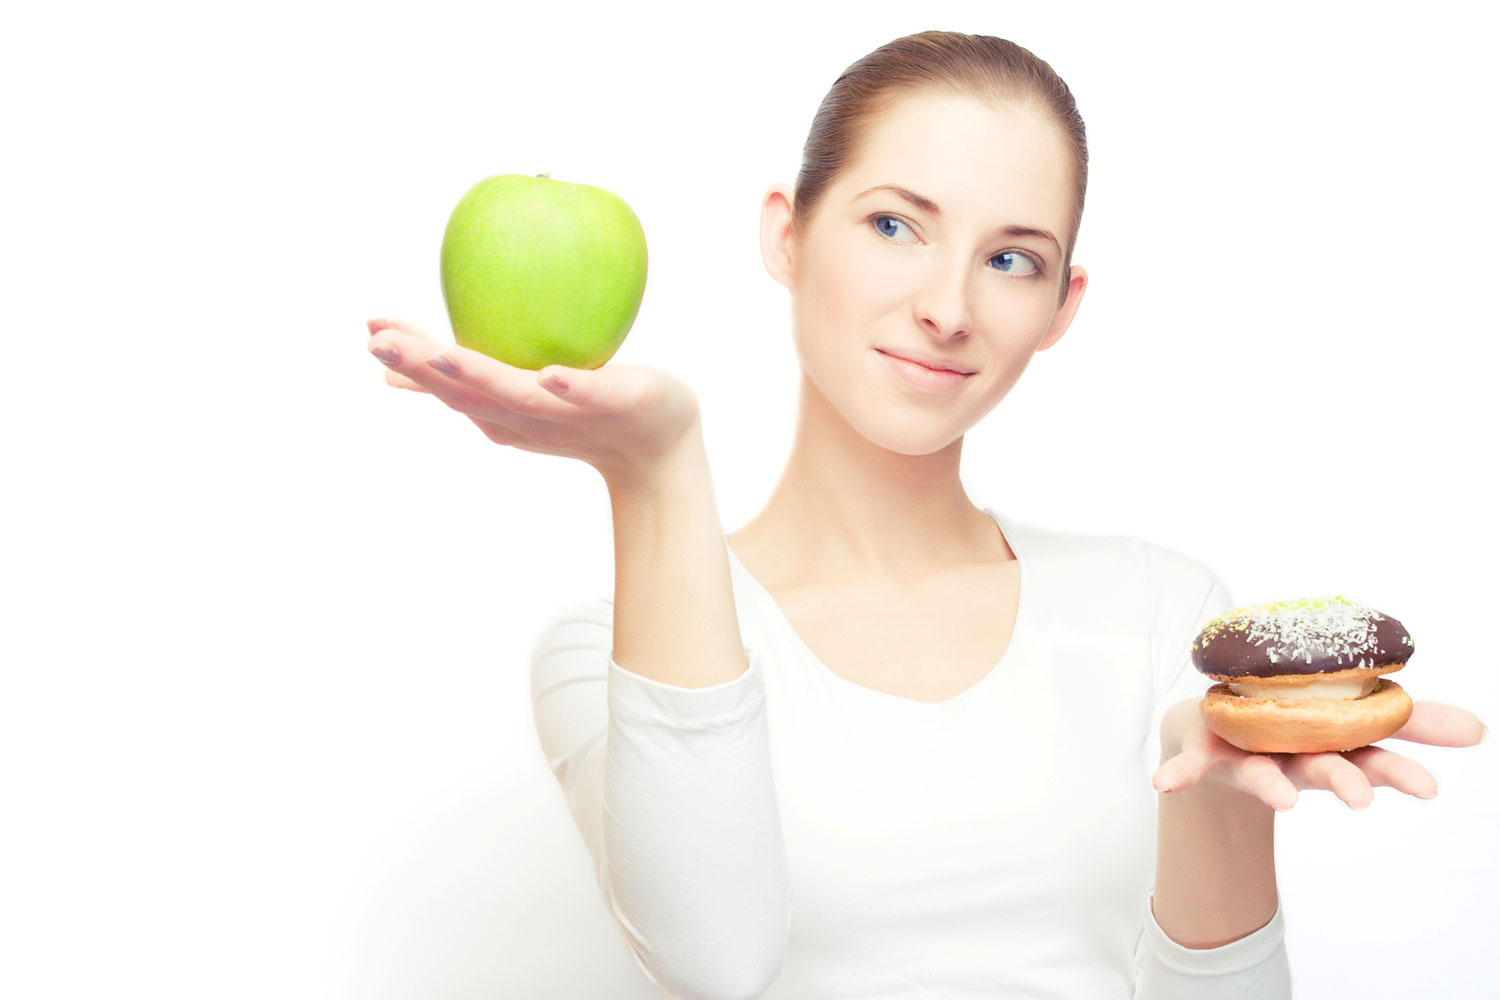 Woman choosing between Unhealthy Foods